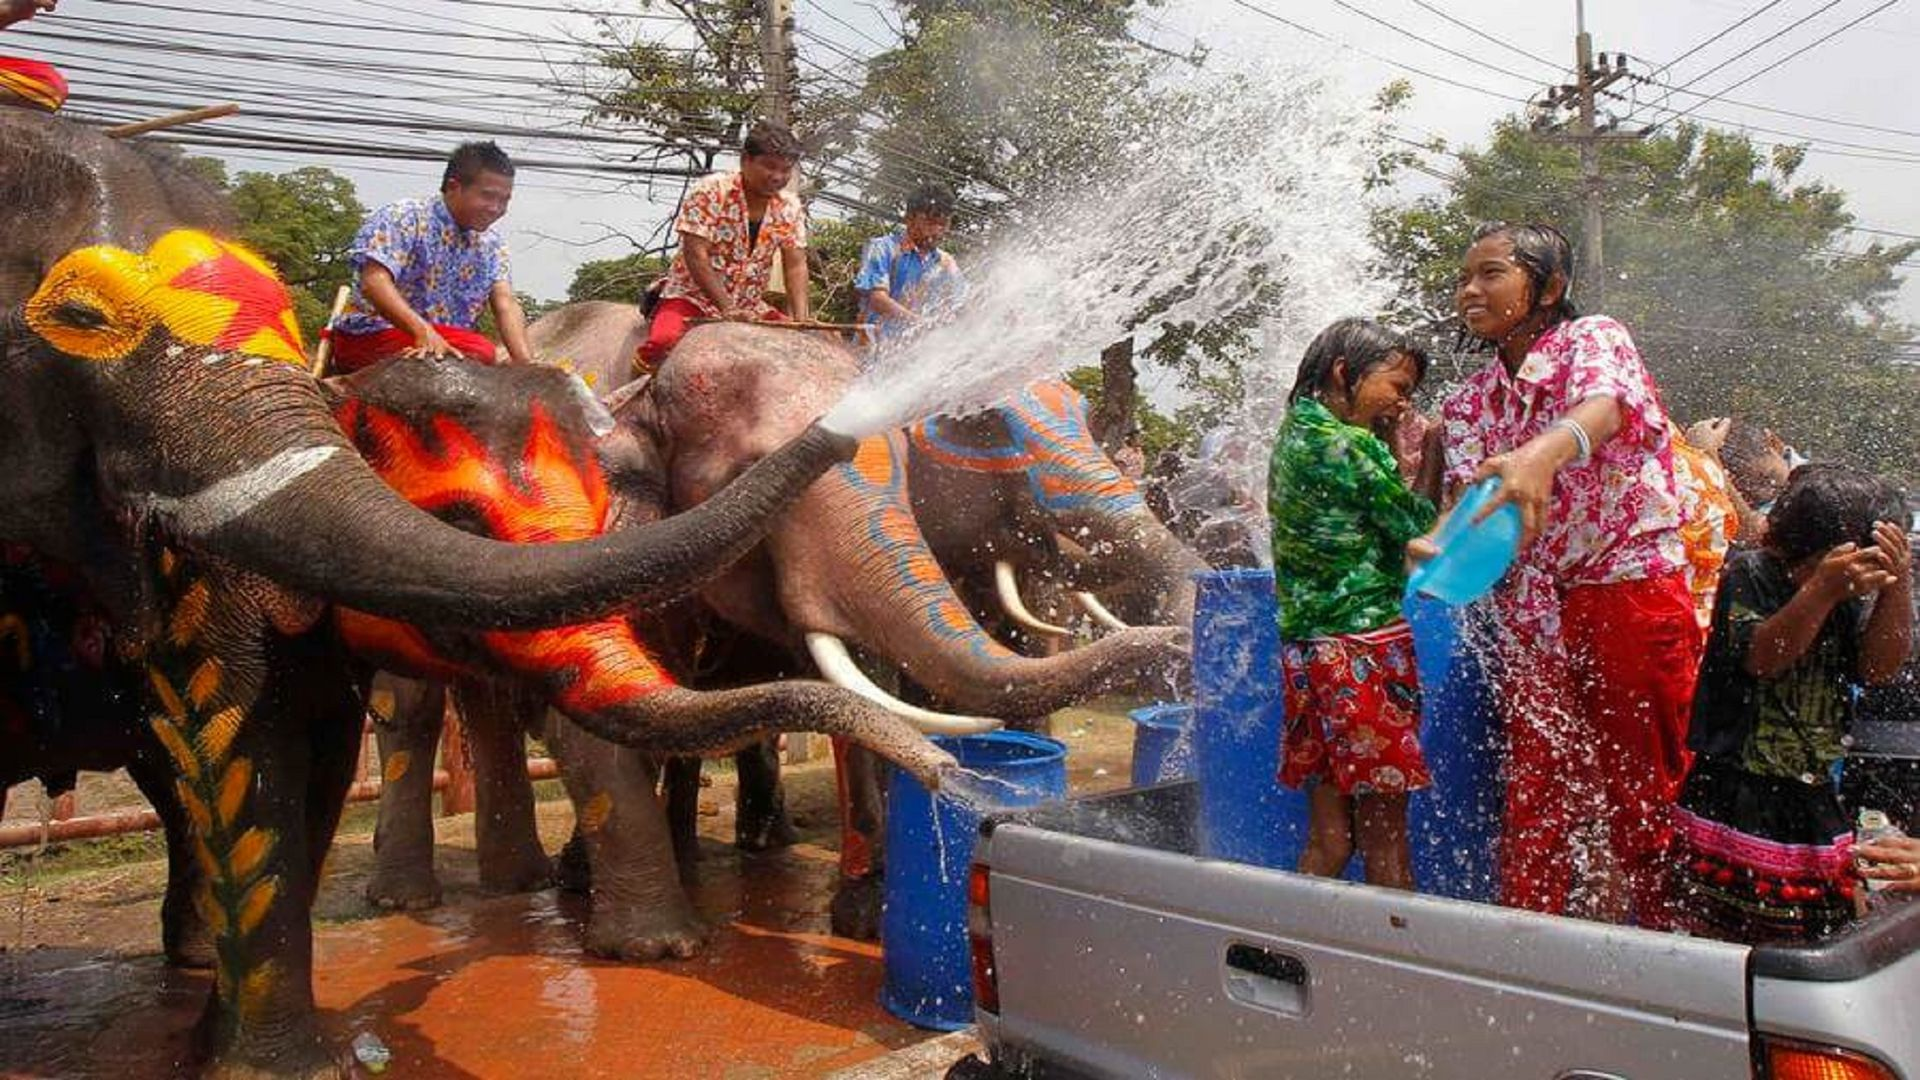 Brightly-colored elephants are a major part of Songkran festivities in some areas of Thailand. Photo taken on April 13, 2011.